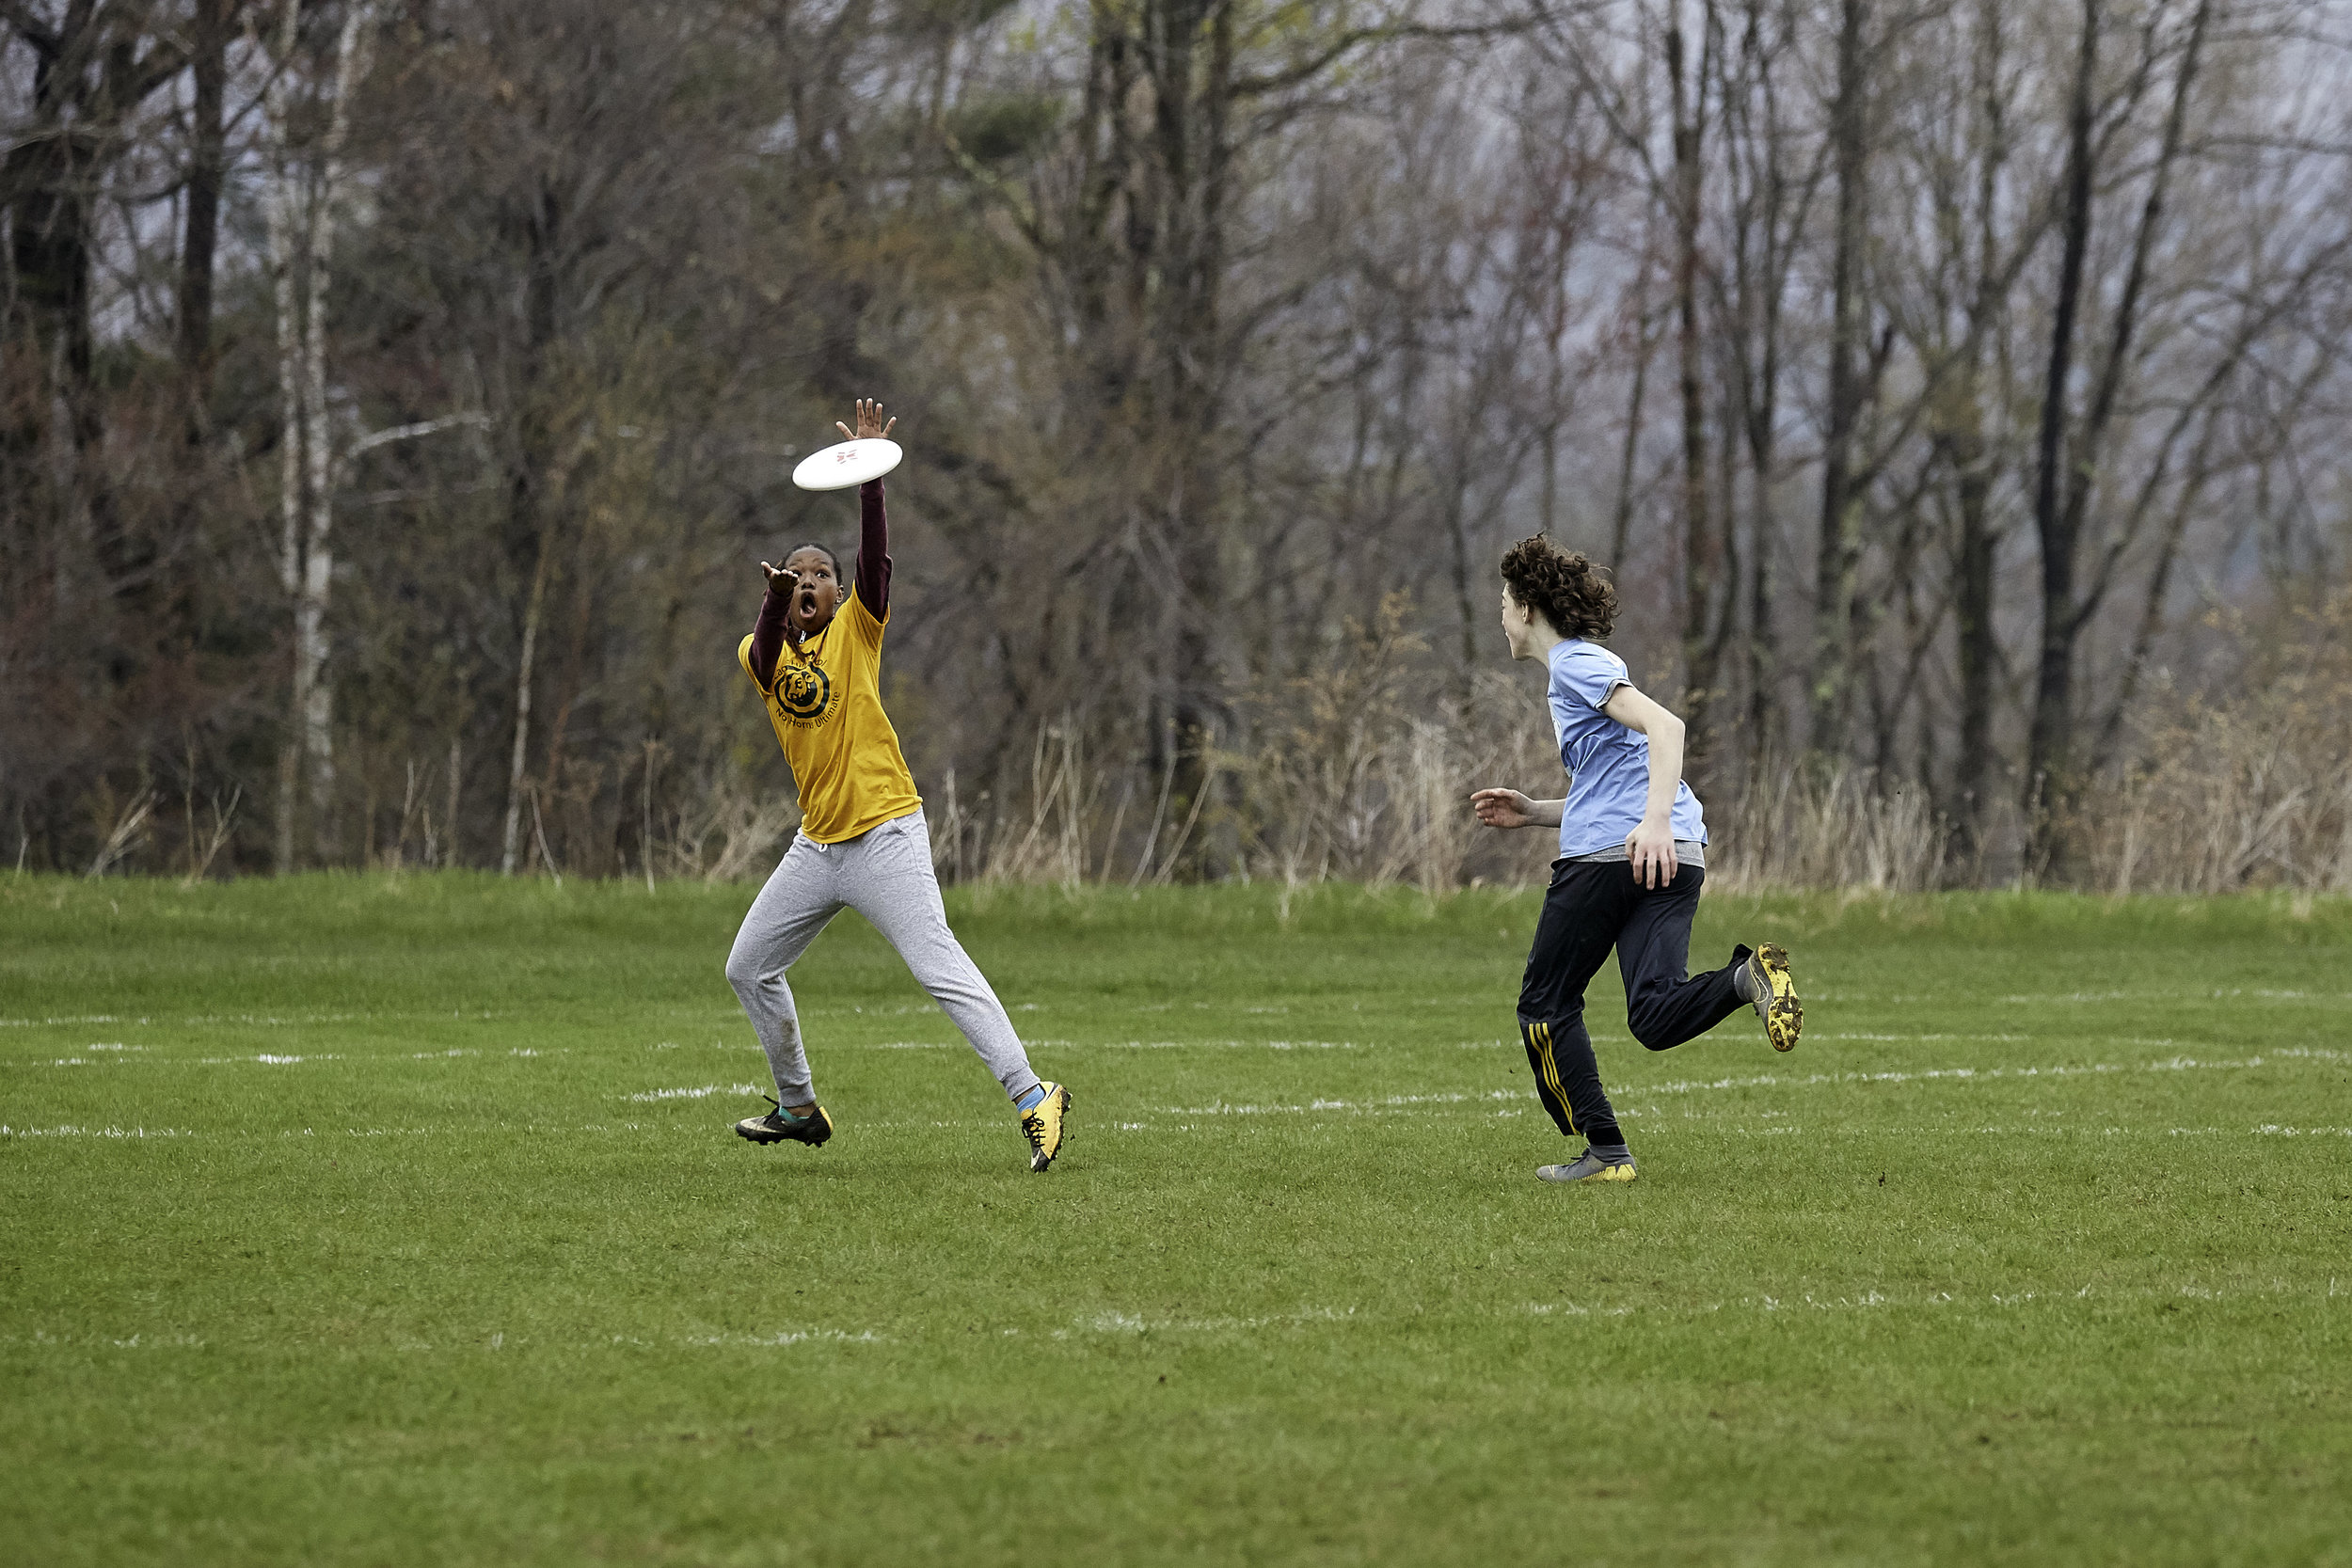 Ultimate Frisbee vs. Eagle Hill School - May 3, 2019 - 188760.jpg